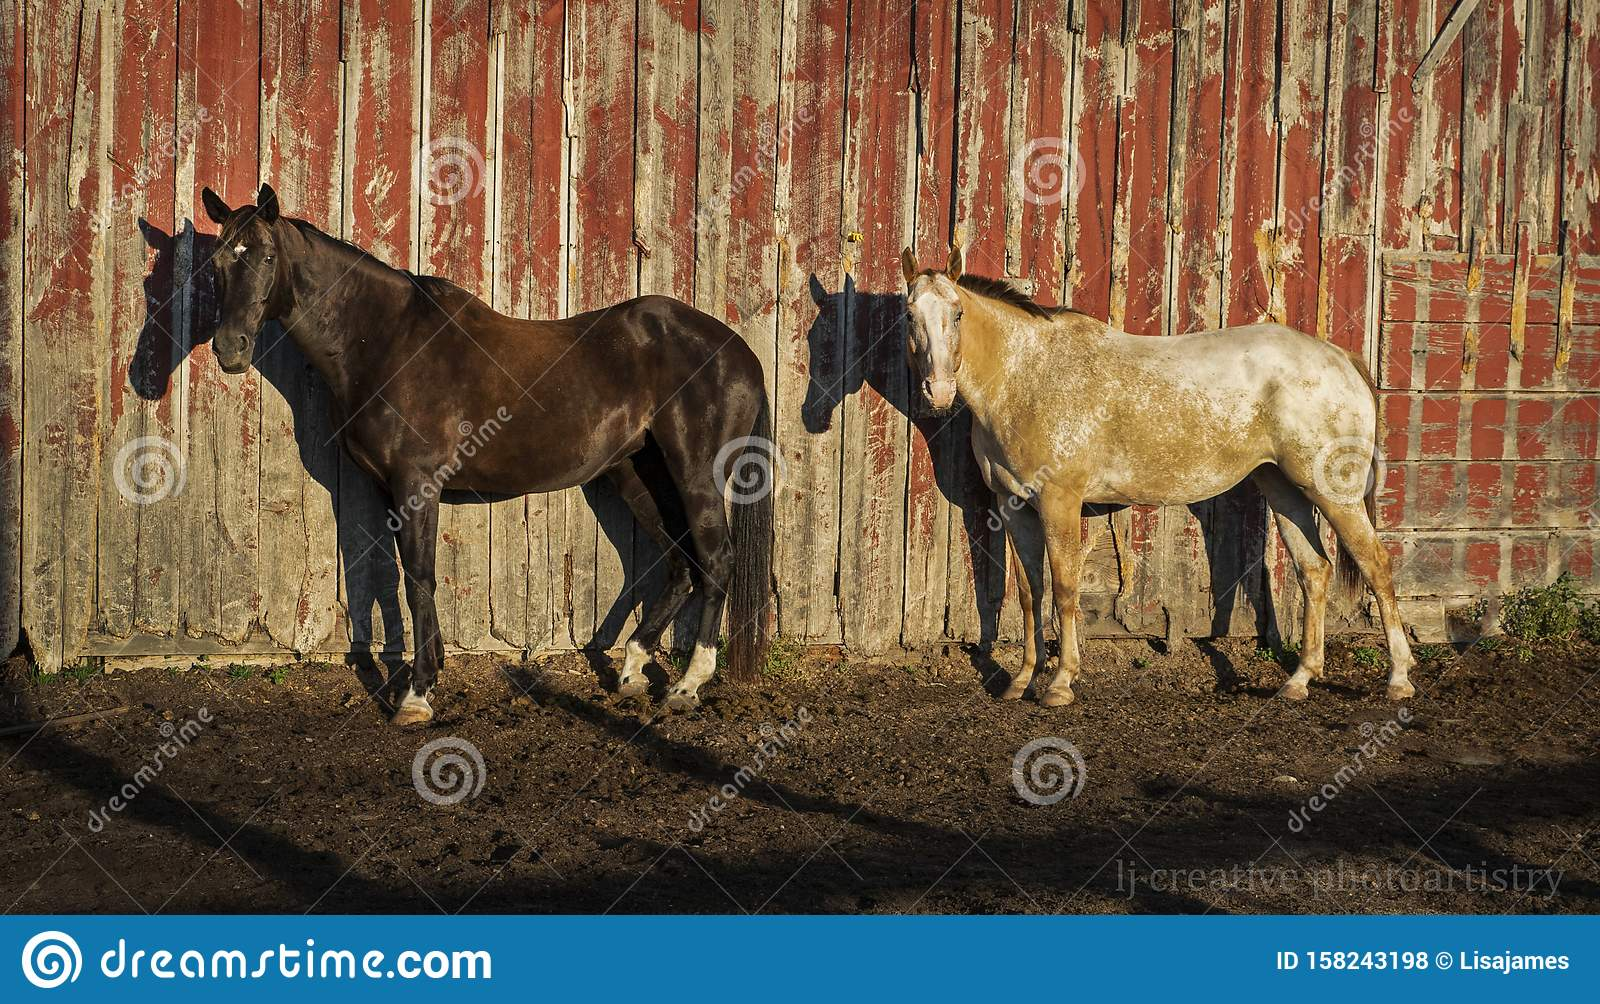 Horses Together In Their Paddock Stock Photo Image Of Coastline Surf 158243198